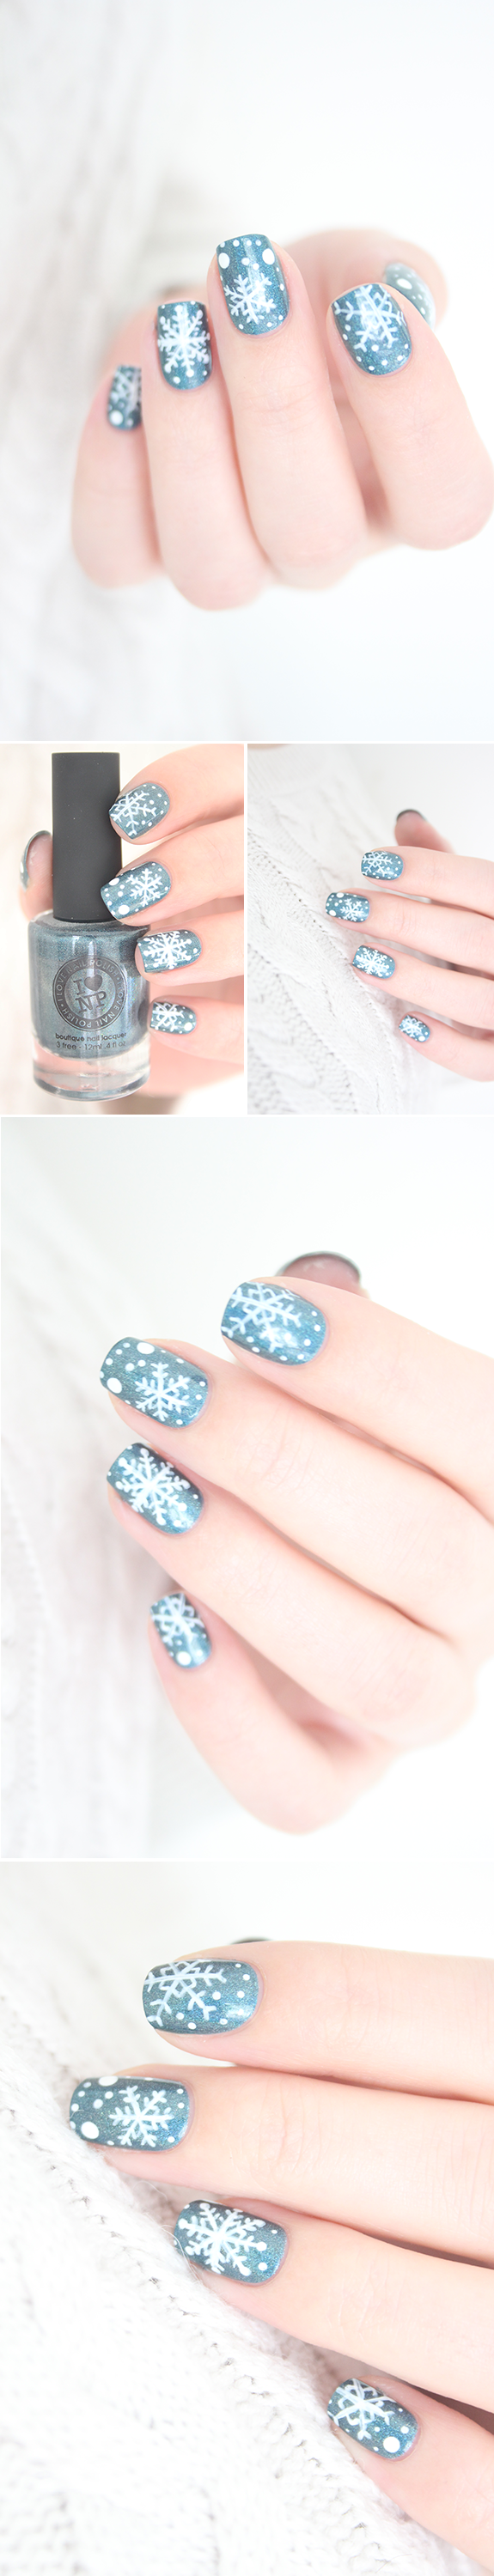 winter-nails-2